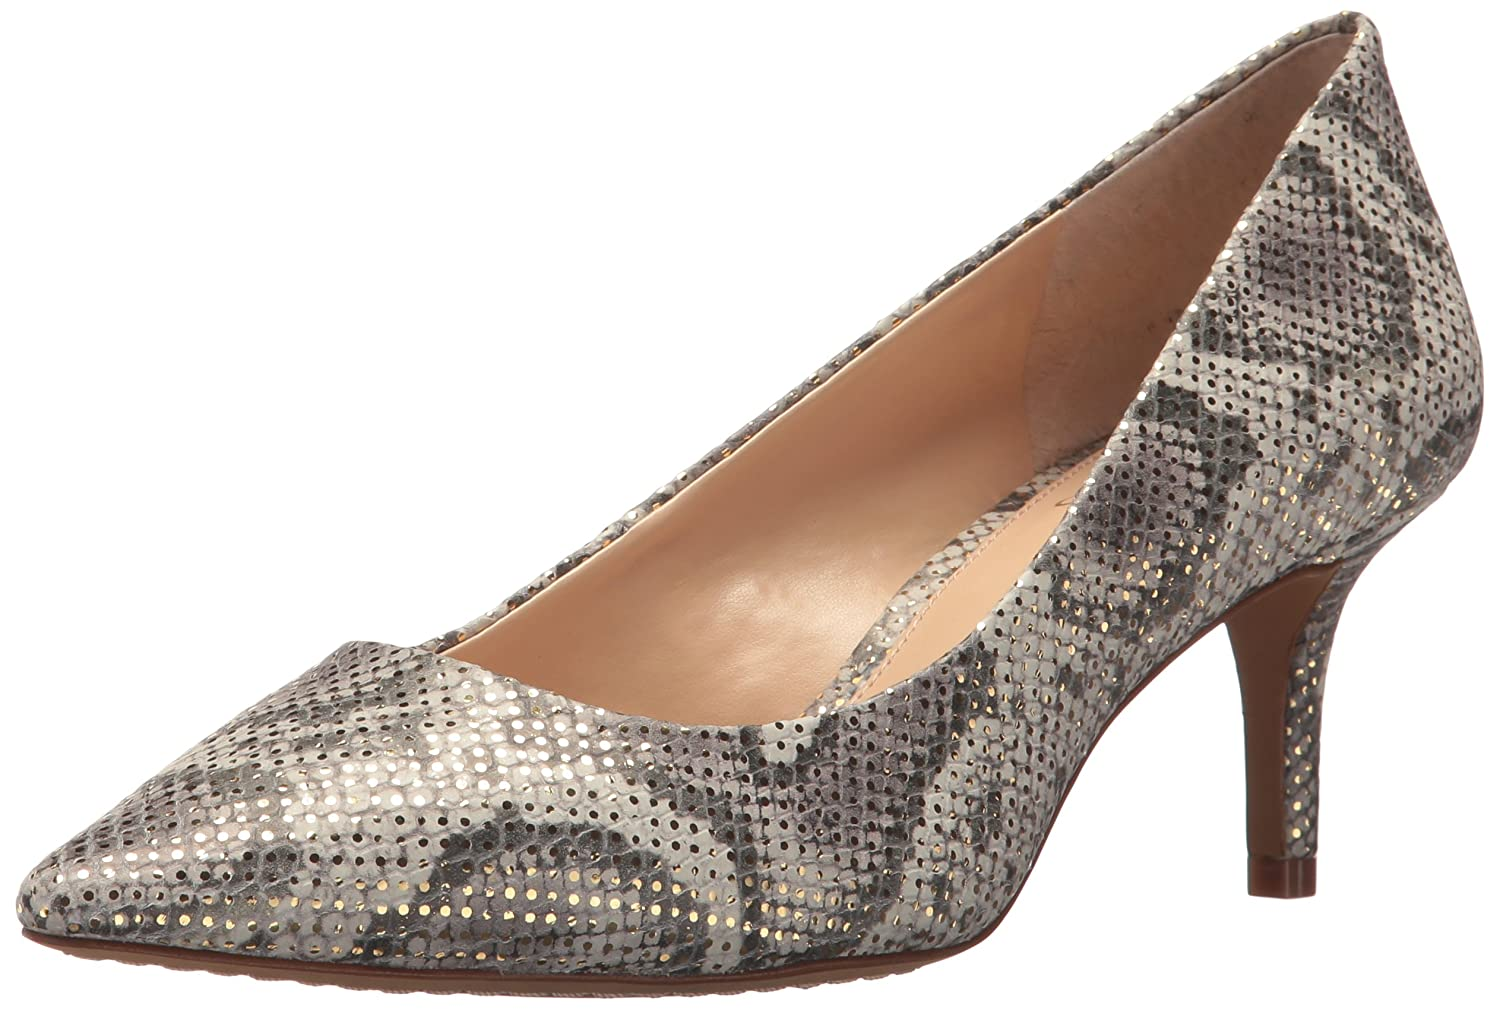 Vince Camuto Women's Kemira Pump B0771R4PWF 10 B(M) US|Natural Gold